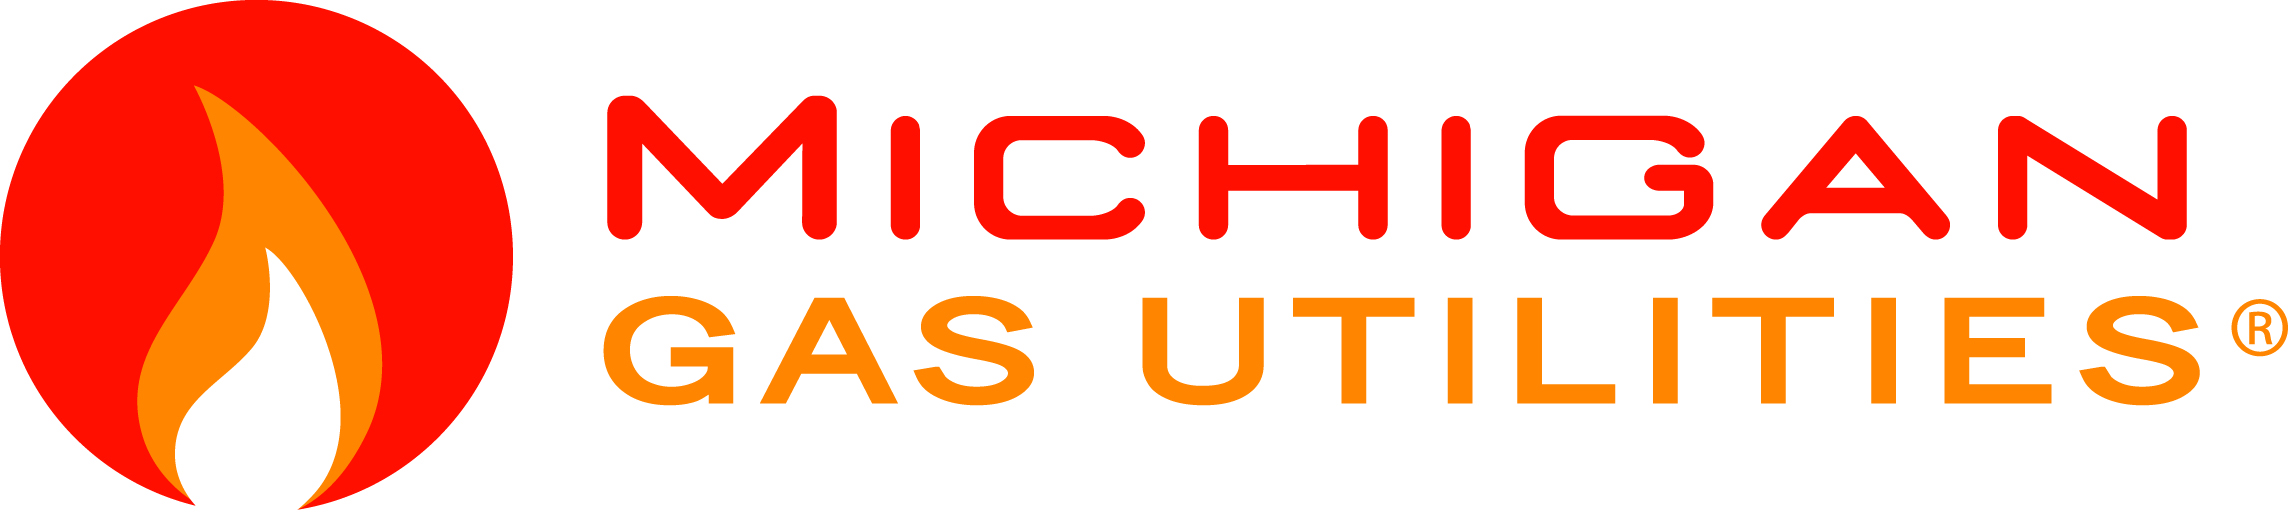 MGU-Horizontal-2-Color-JPG.jpg